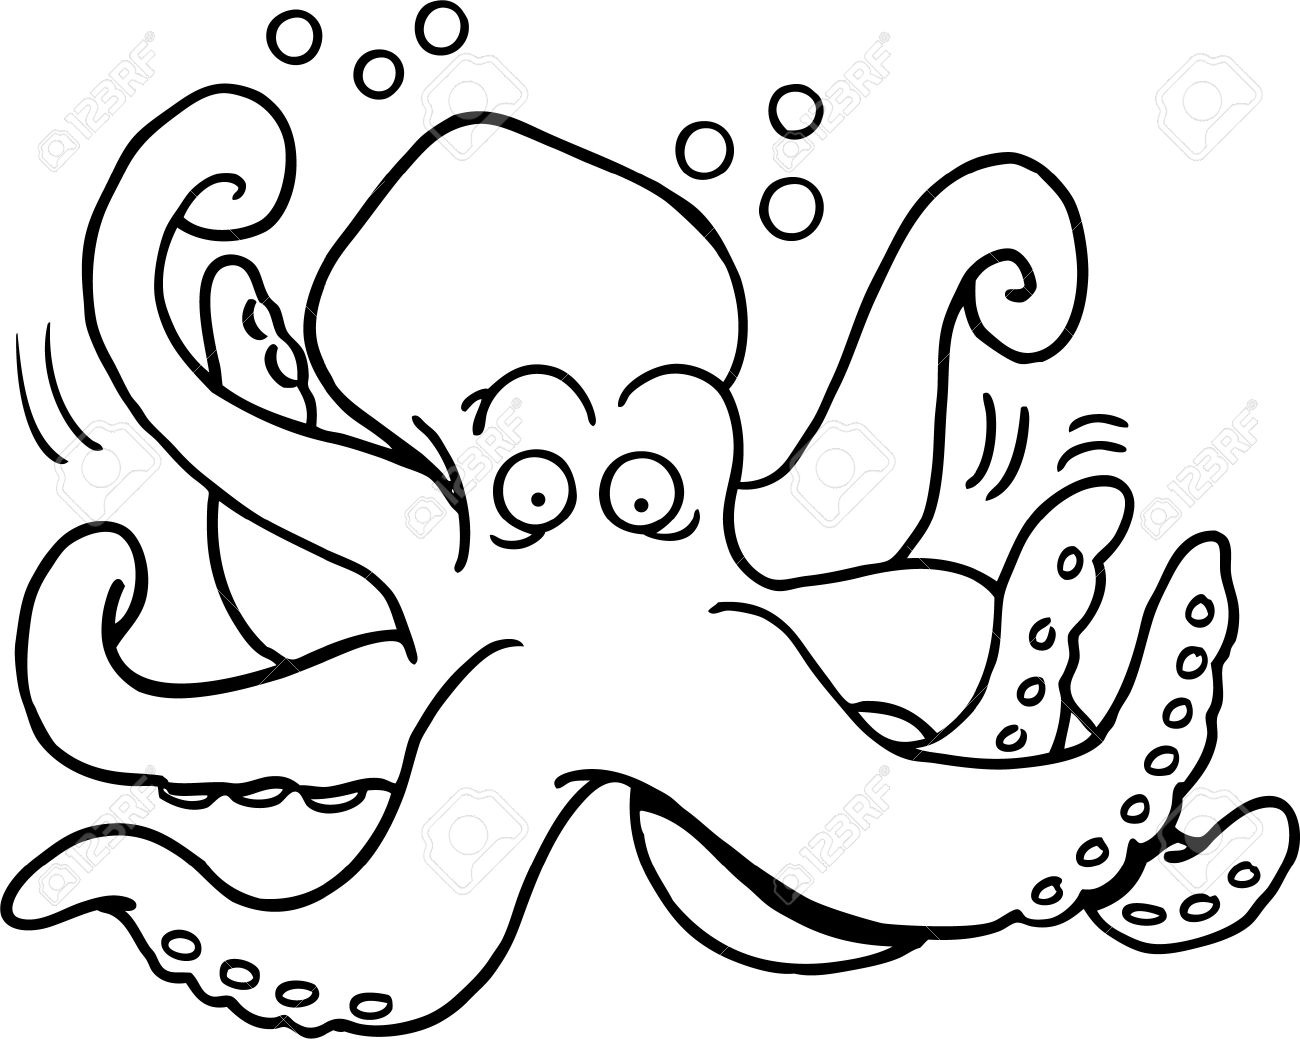 Japanese Octopus Drawing At Getdrawings Com Free For Personal Use